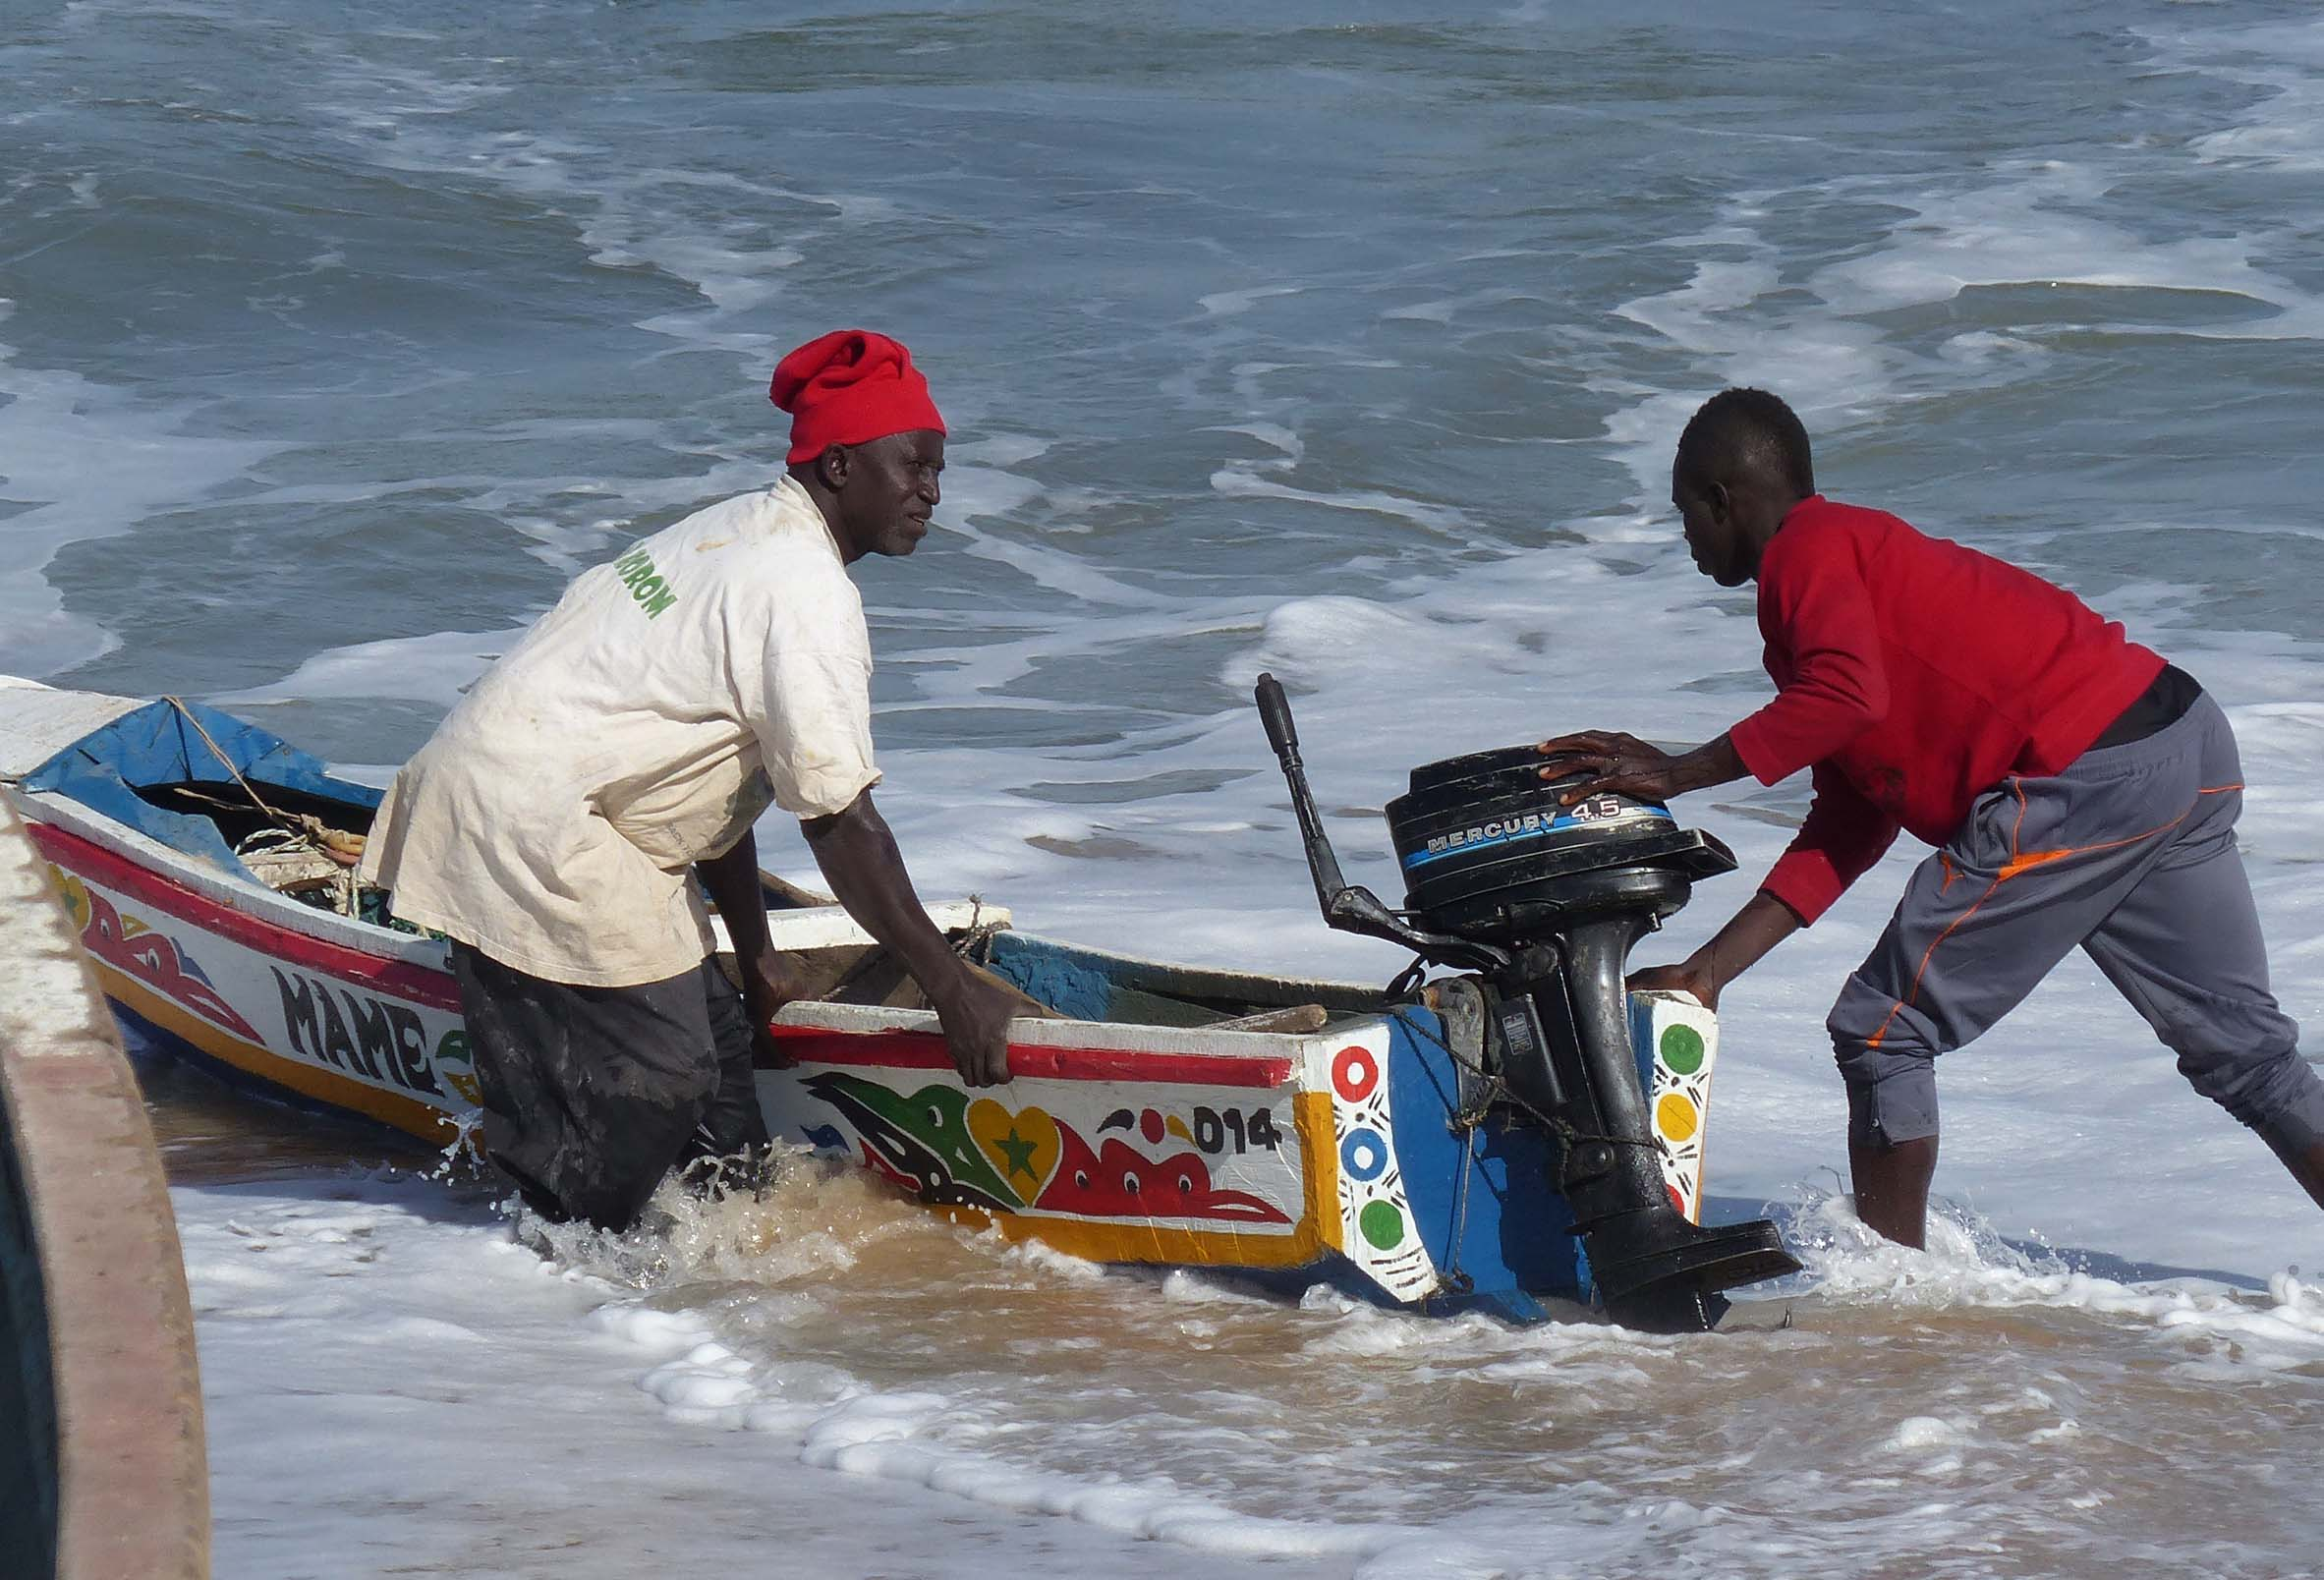 Two men dragging a small boat through the water